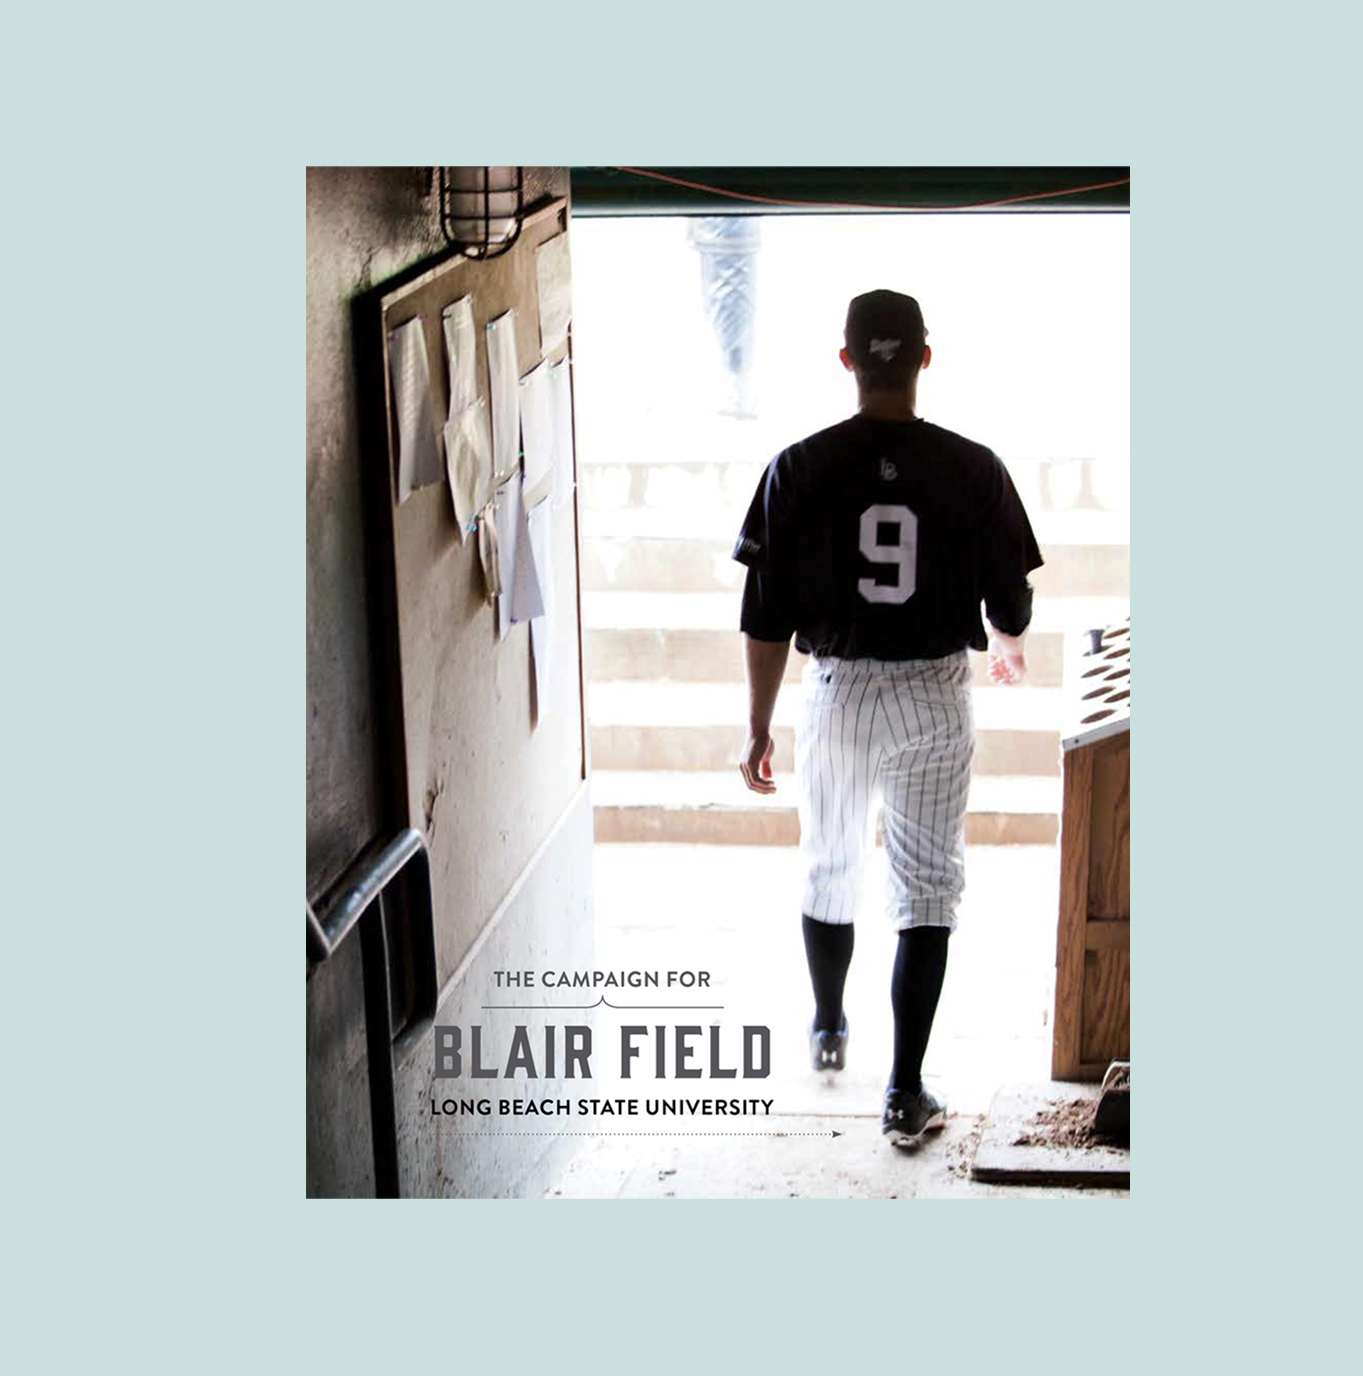 Blair Field